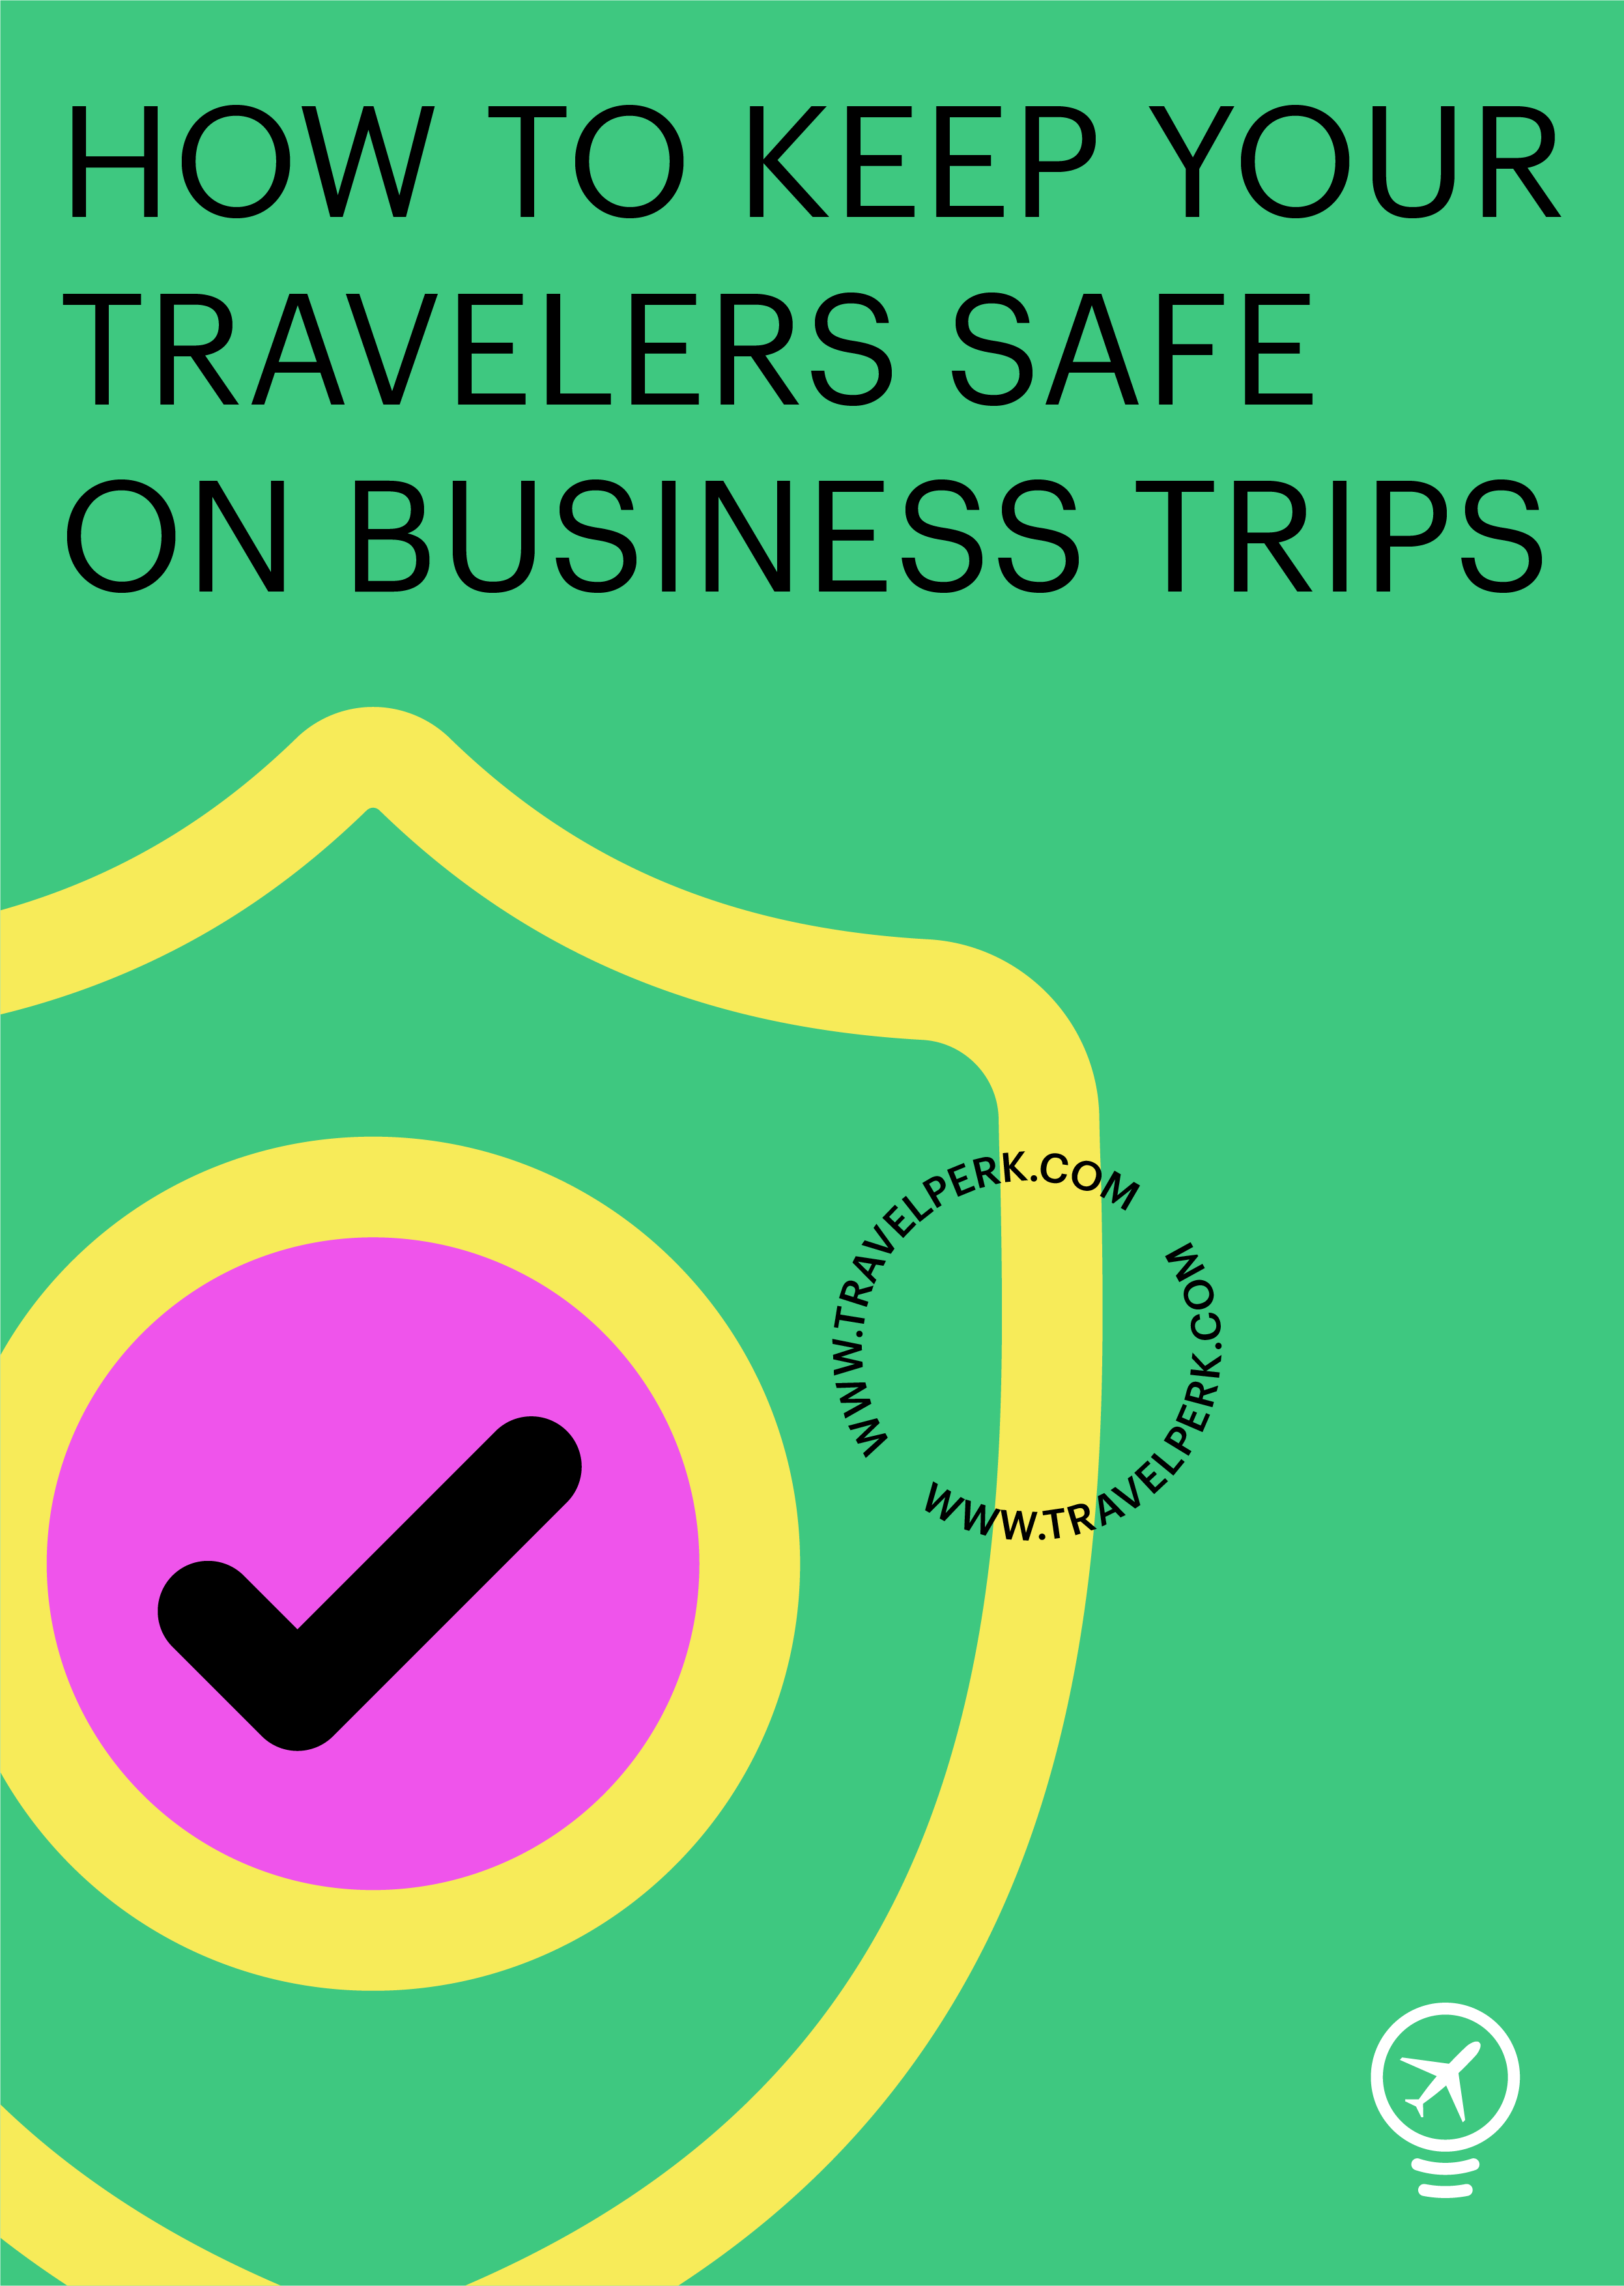 How to keep your travelers safe on business trips